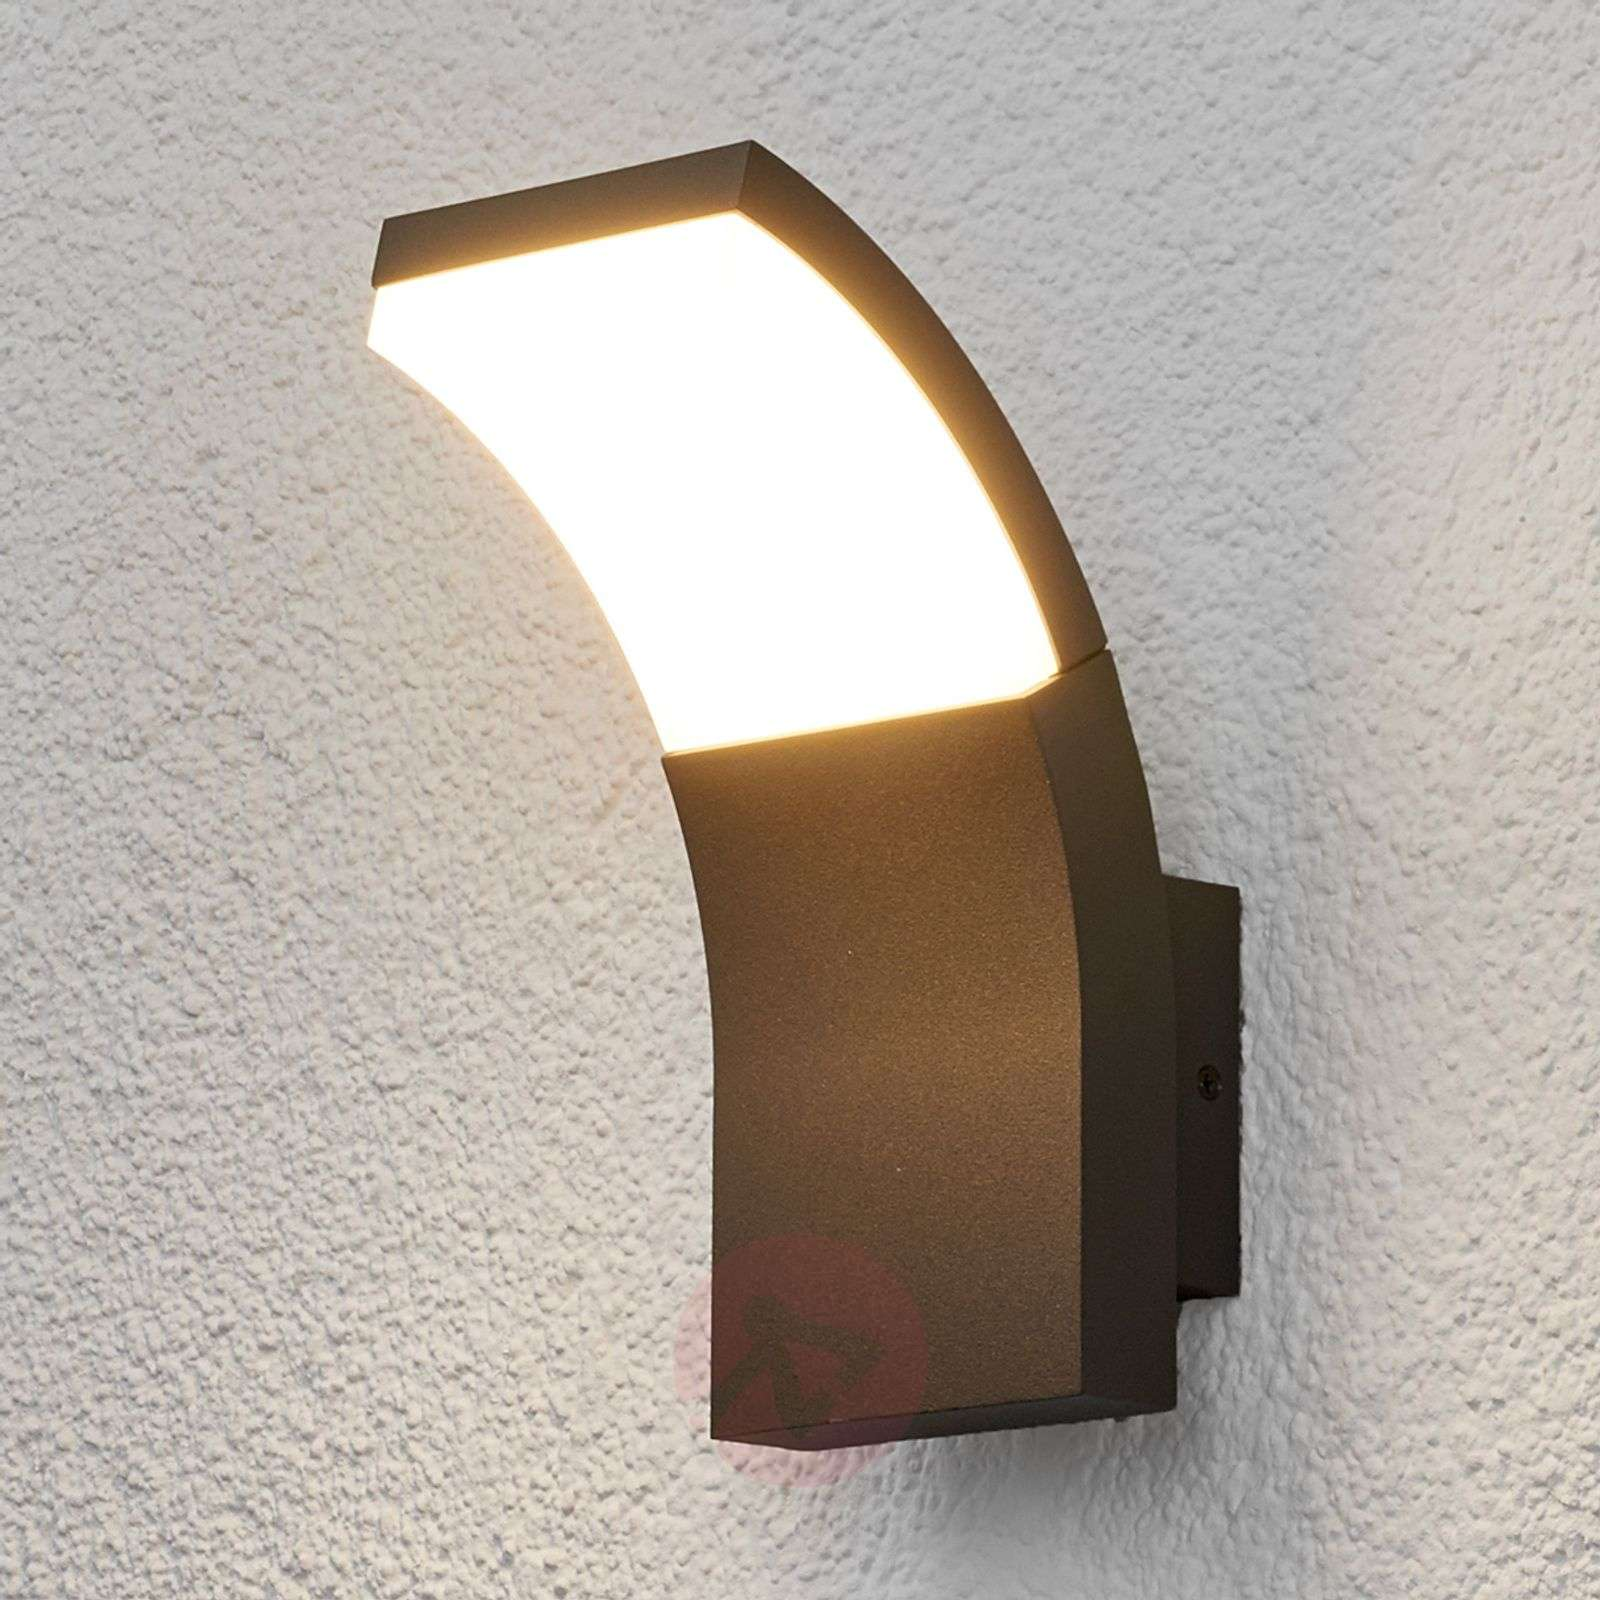 Led outdoor wall light timm 9619048 01